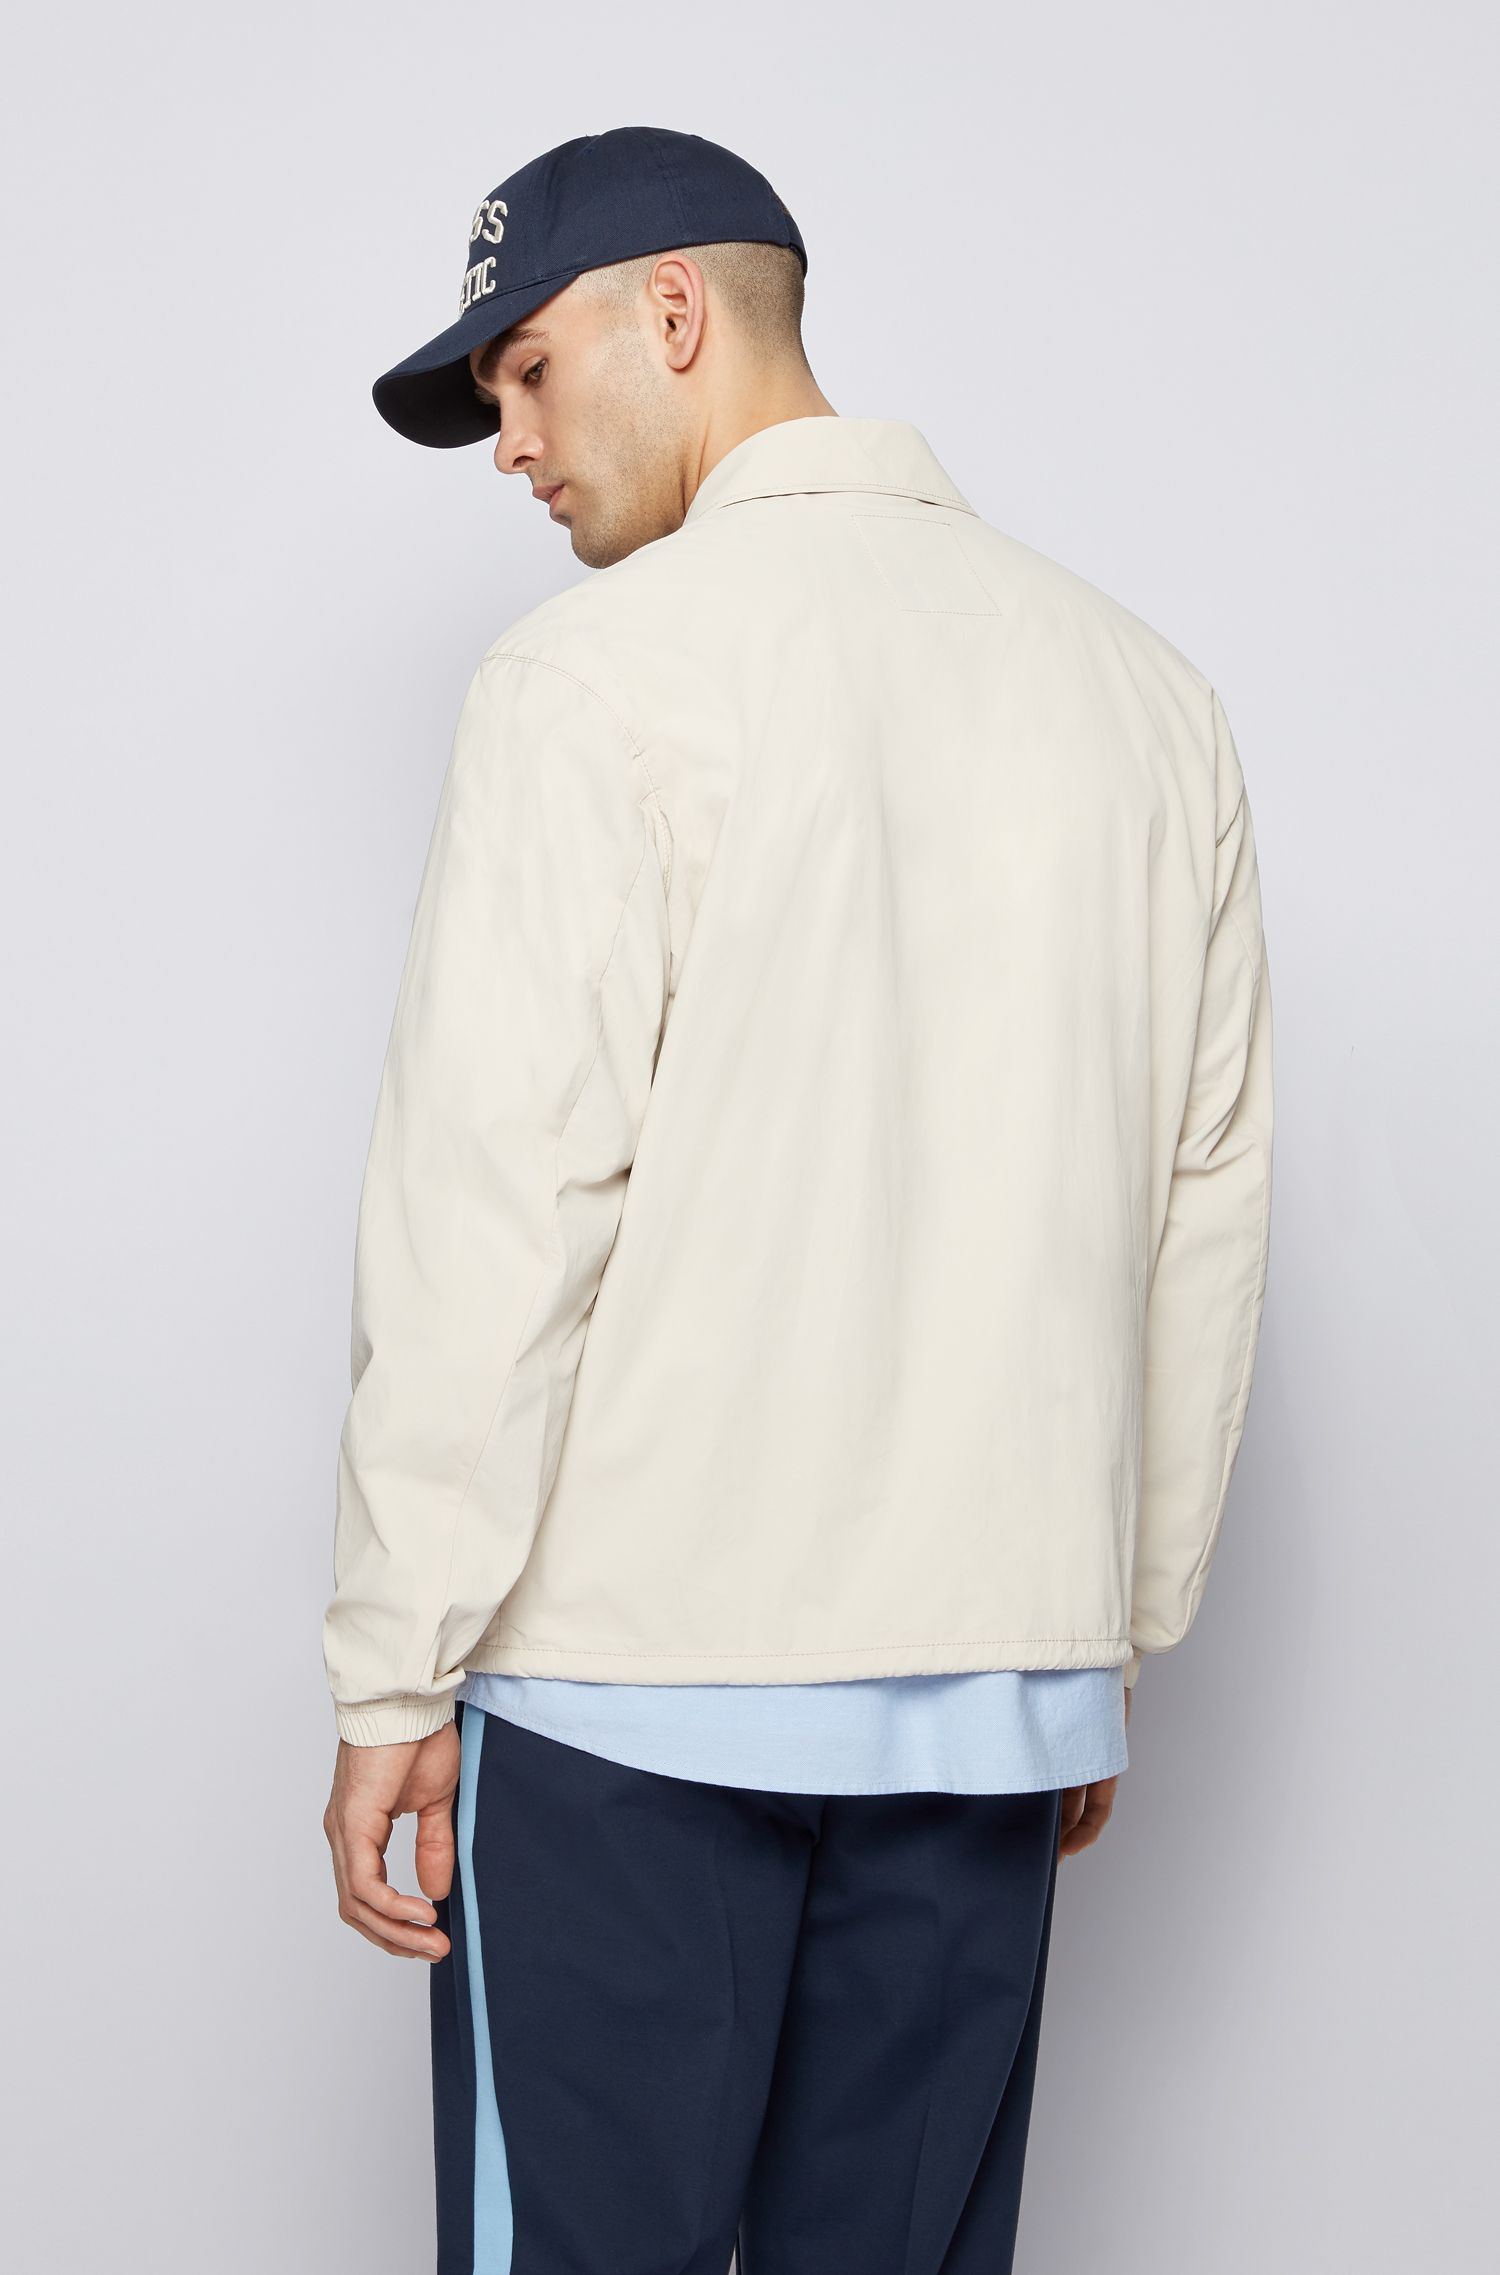 Relaxed fit jacket in cotton lined with exclusive logo BOSS | Jackets | 50455704272